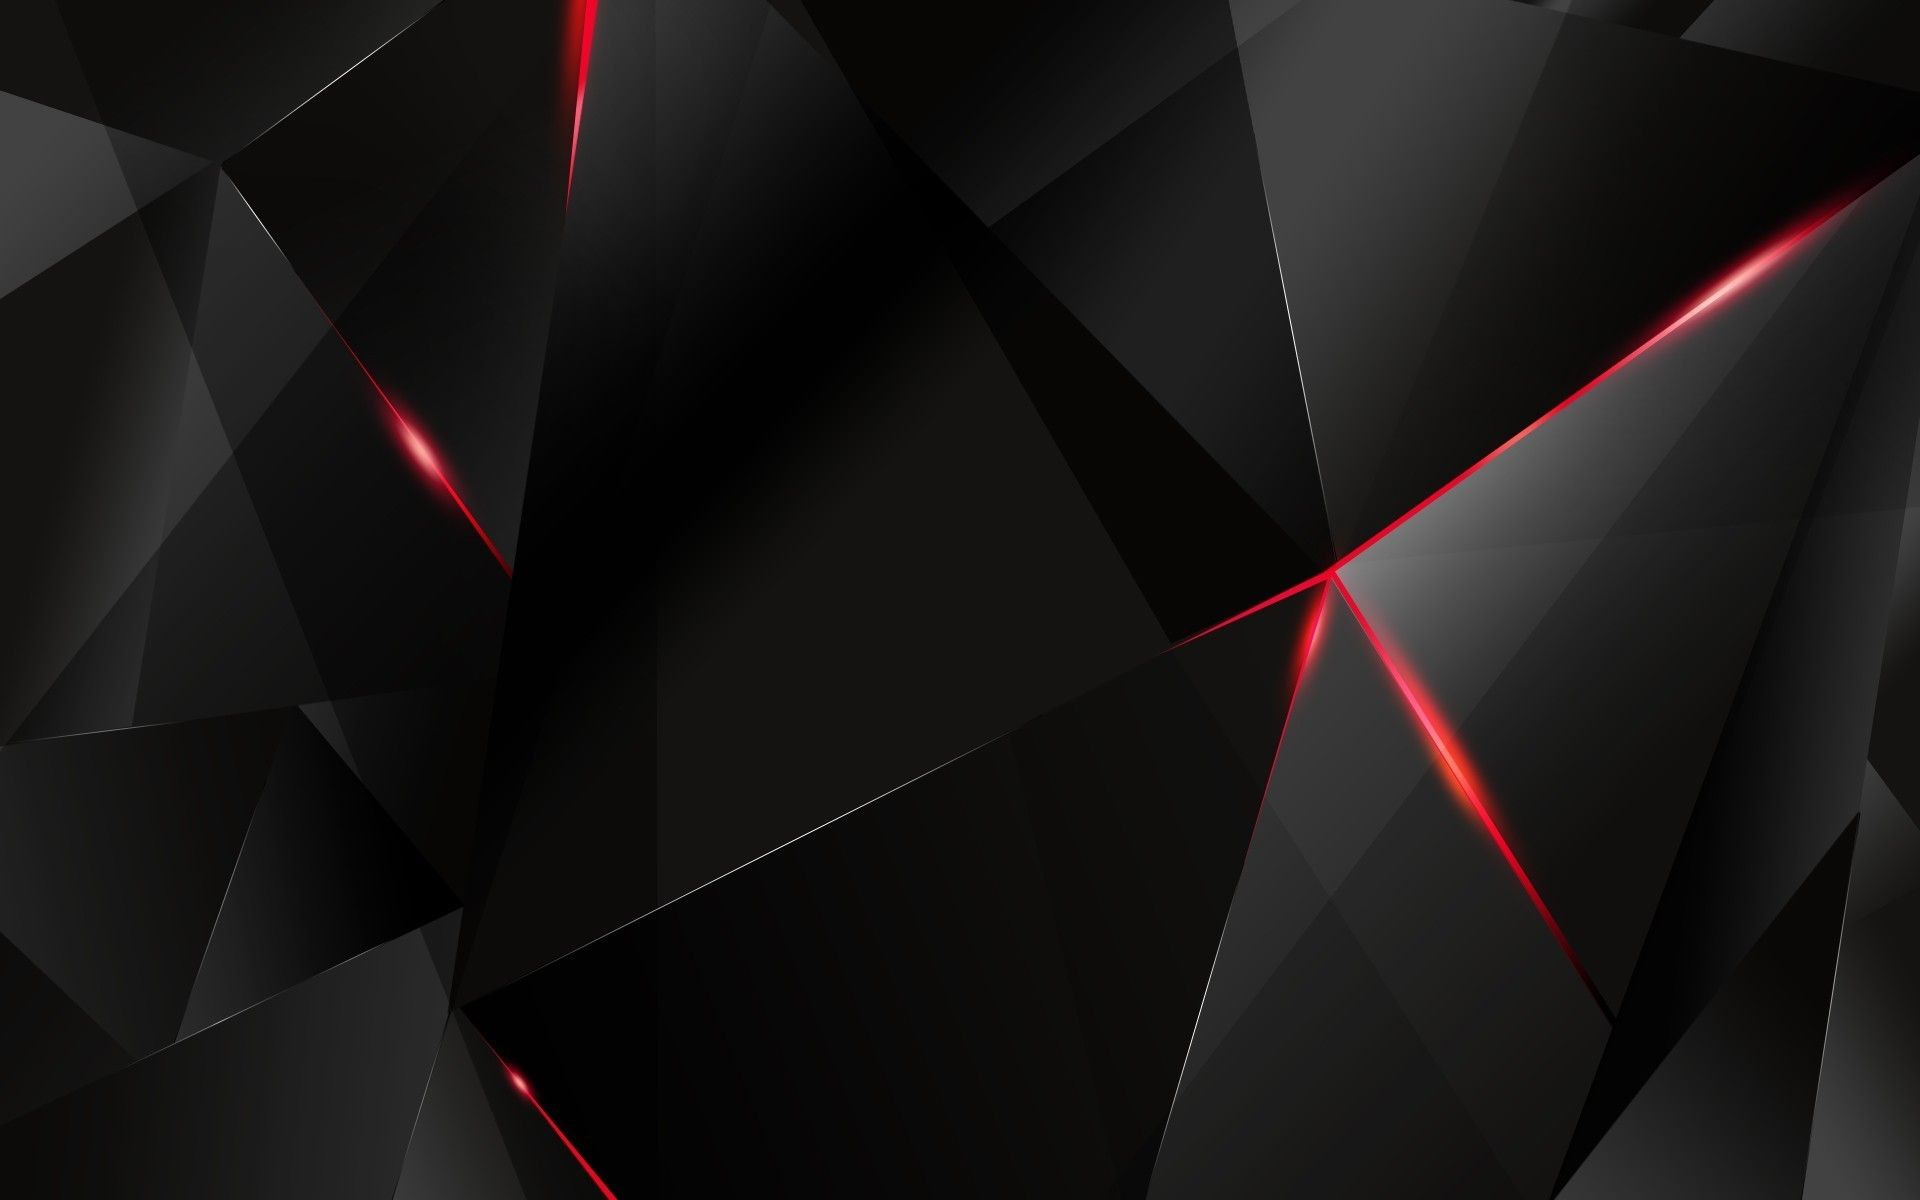 Black And Red Abstract Wallpaper 04